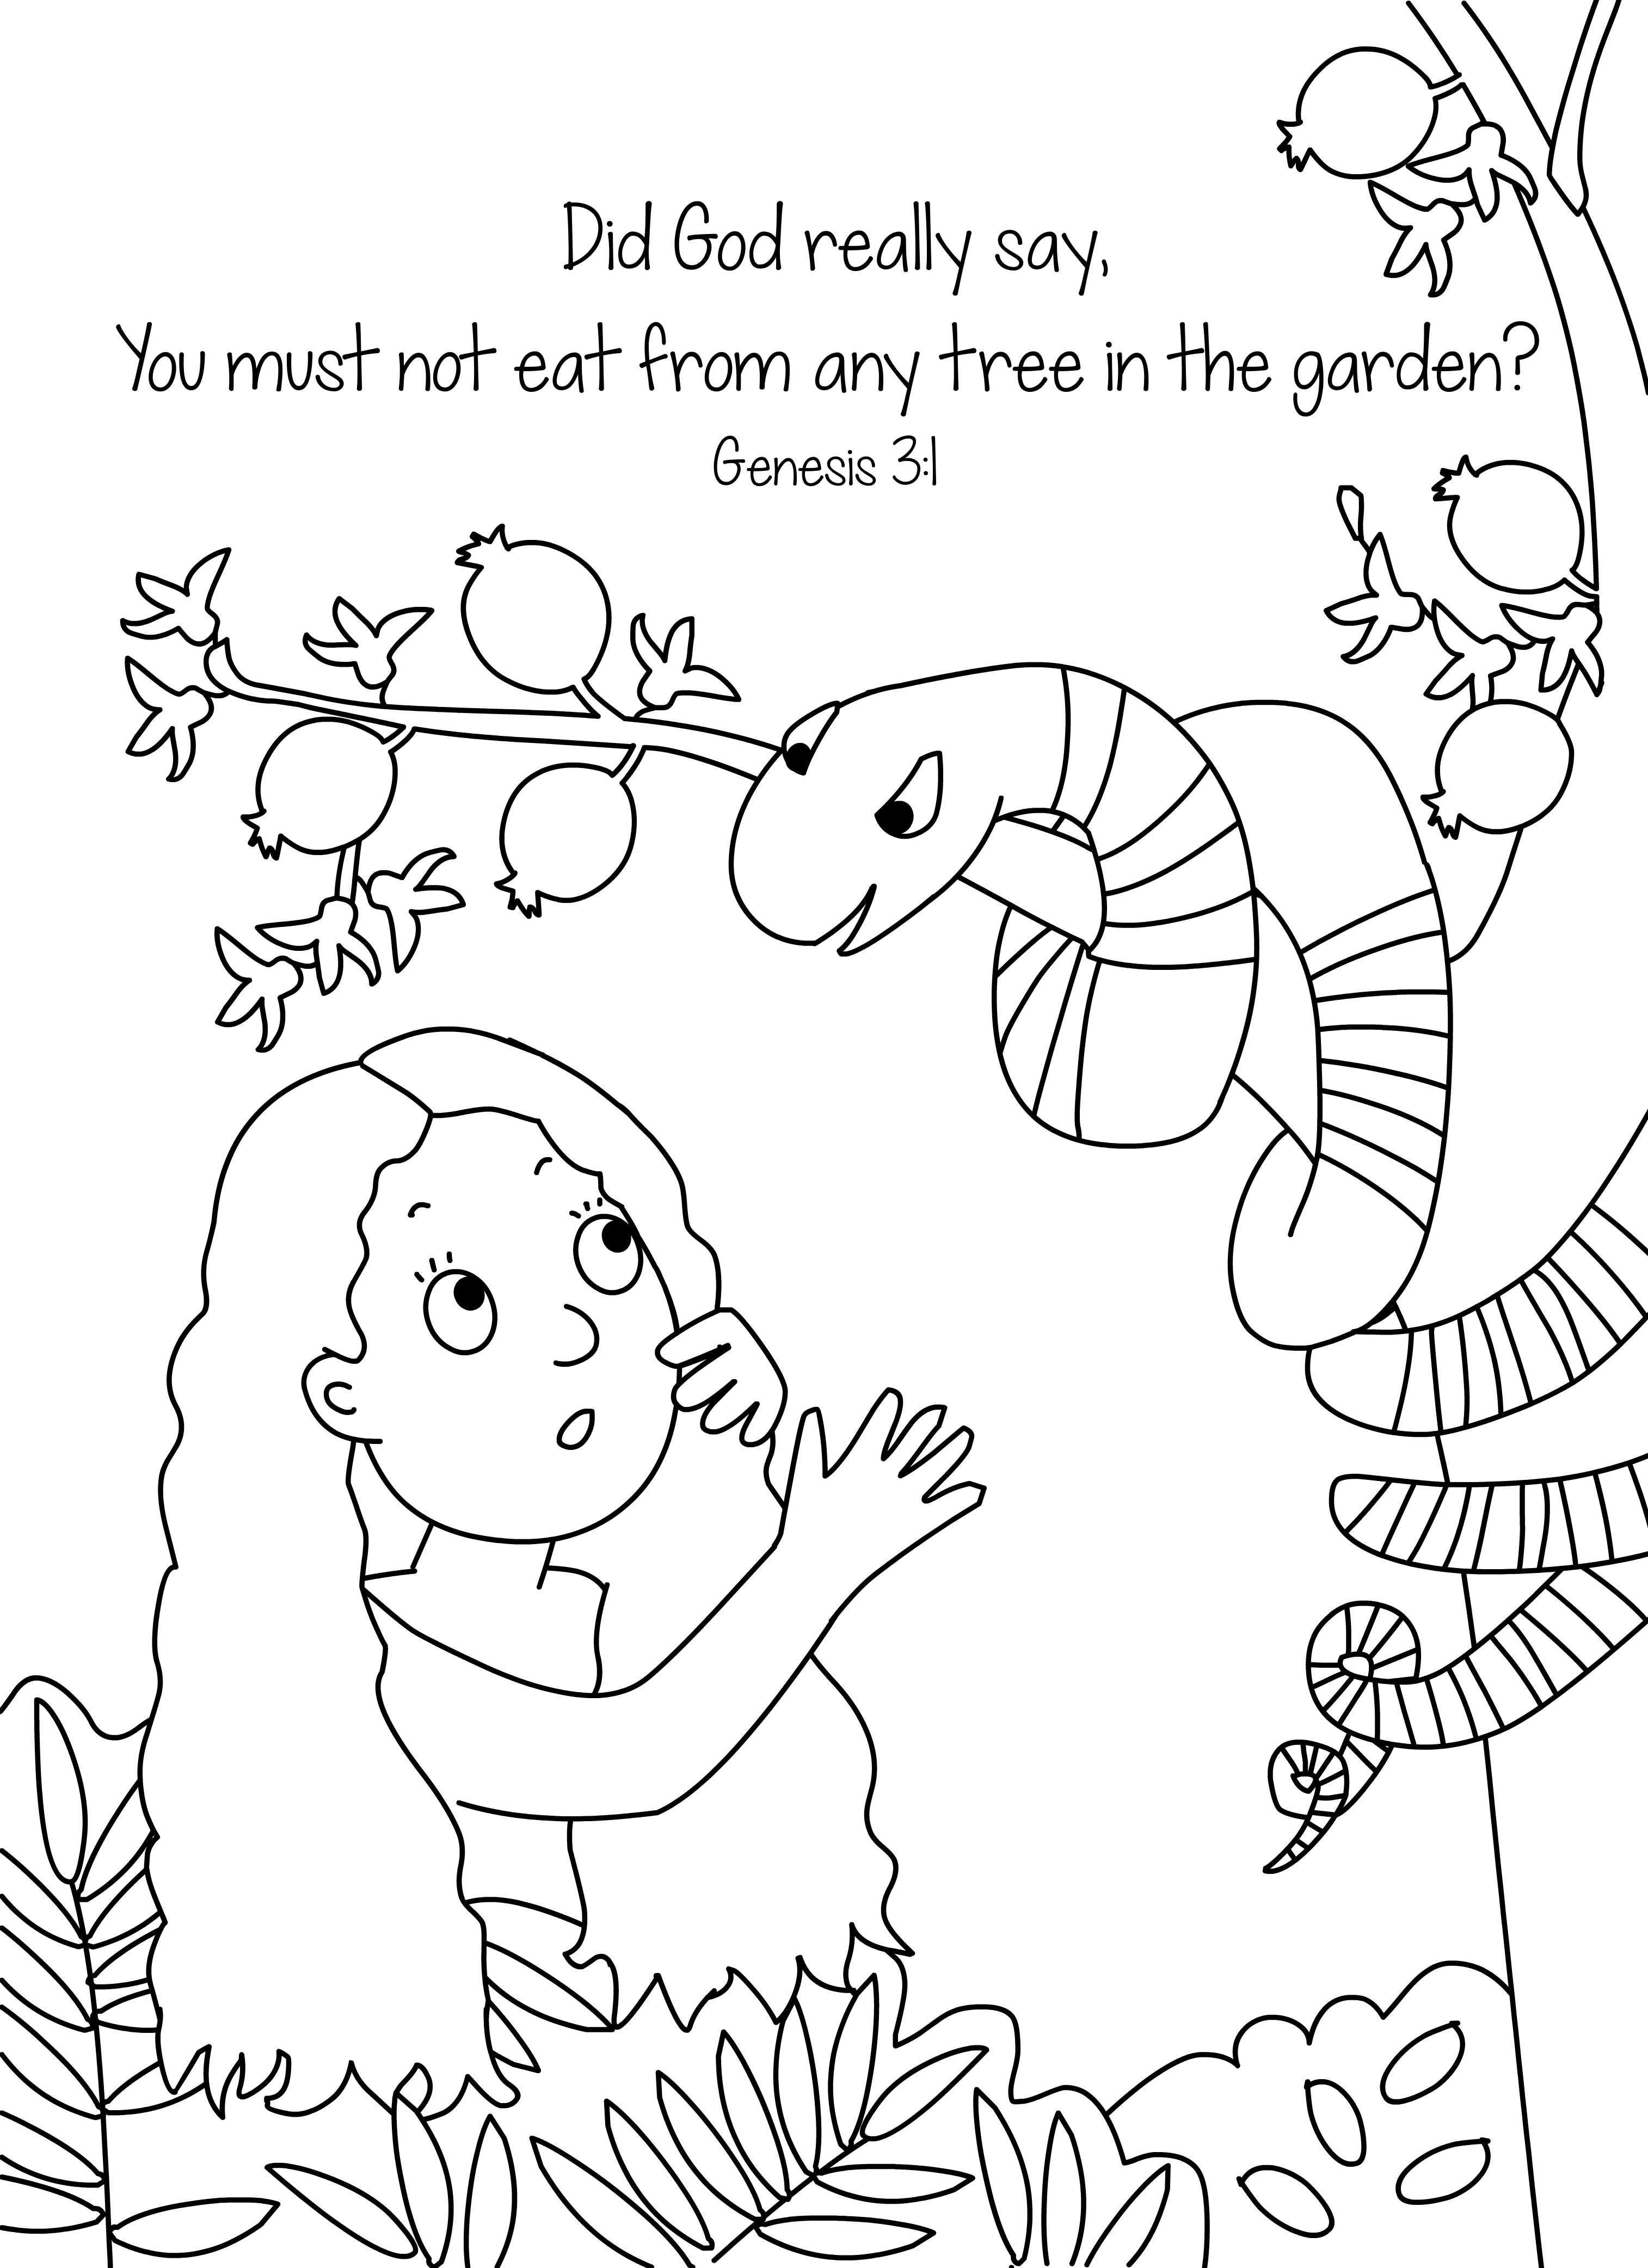 adam and eve coloring page free printable adam and eve coloring pages for kids best adam page coloring and eve